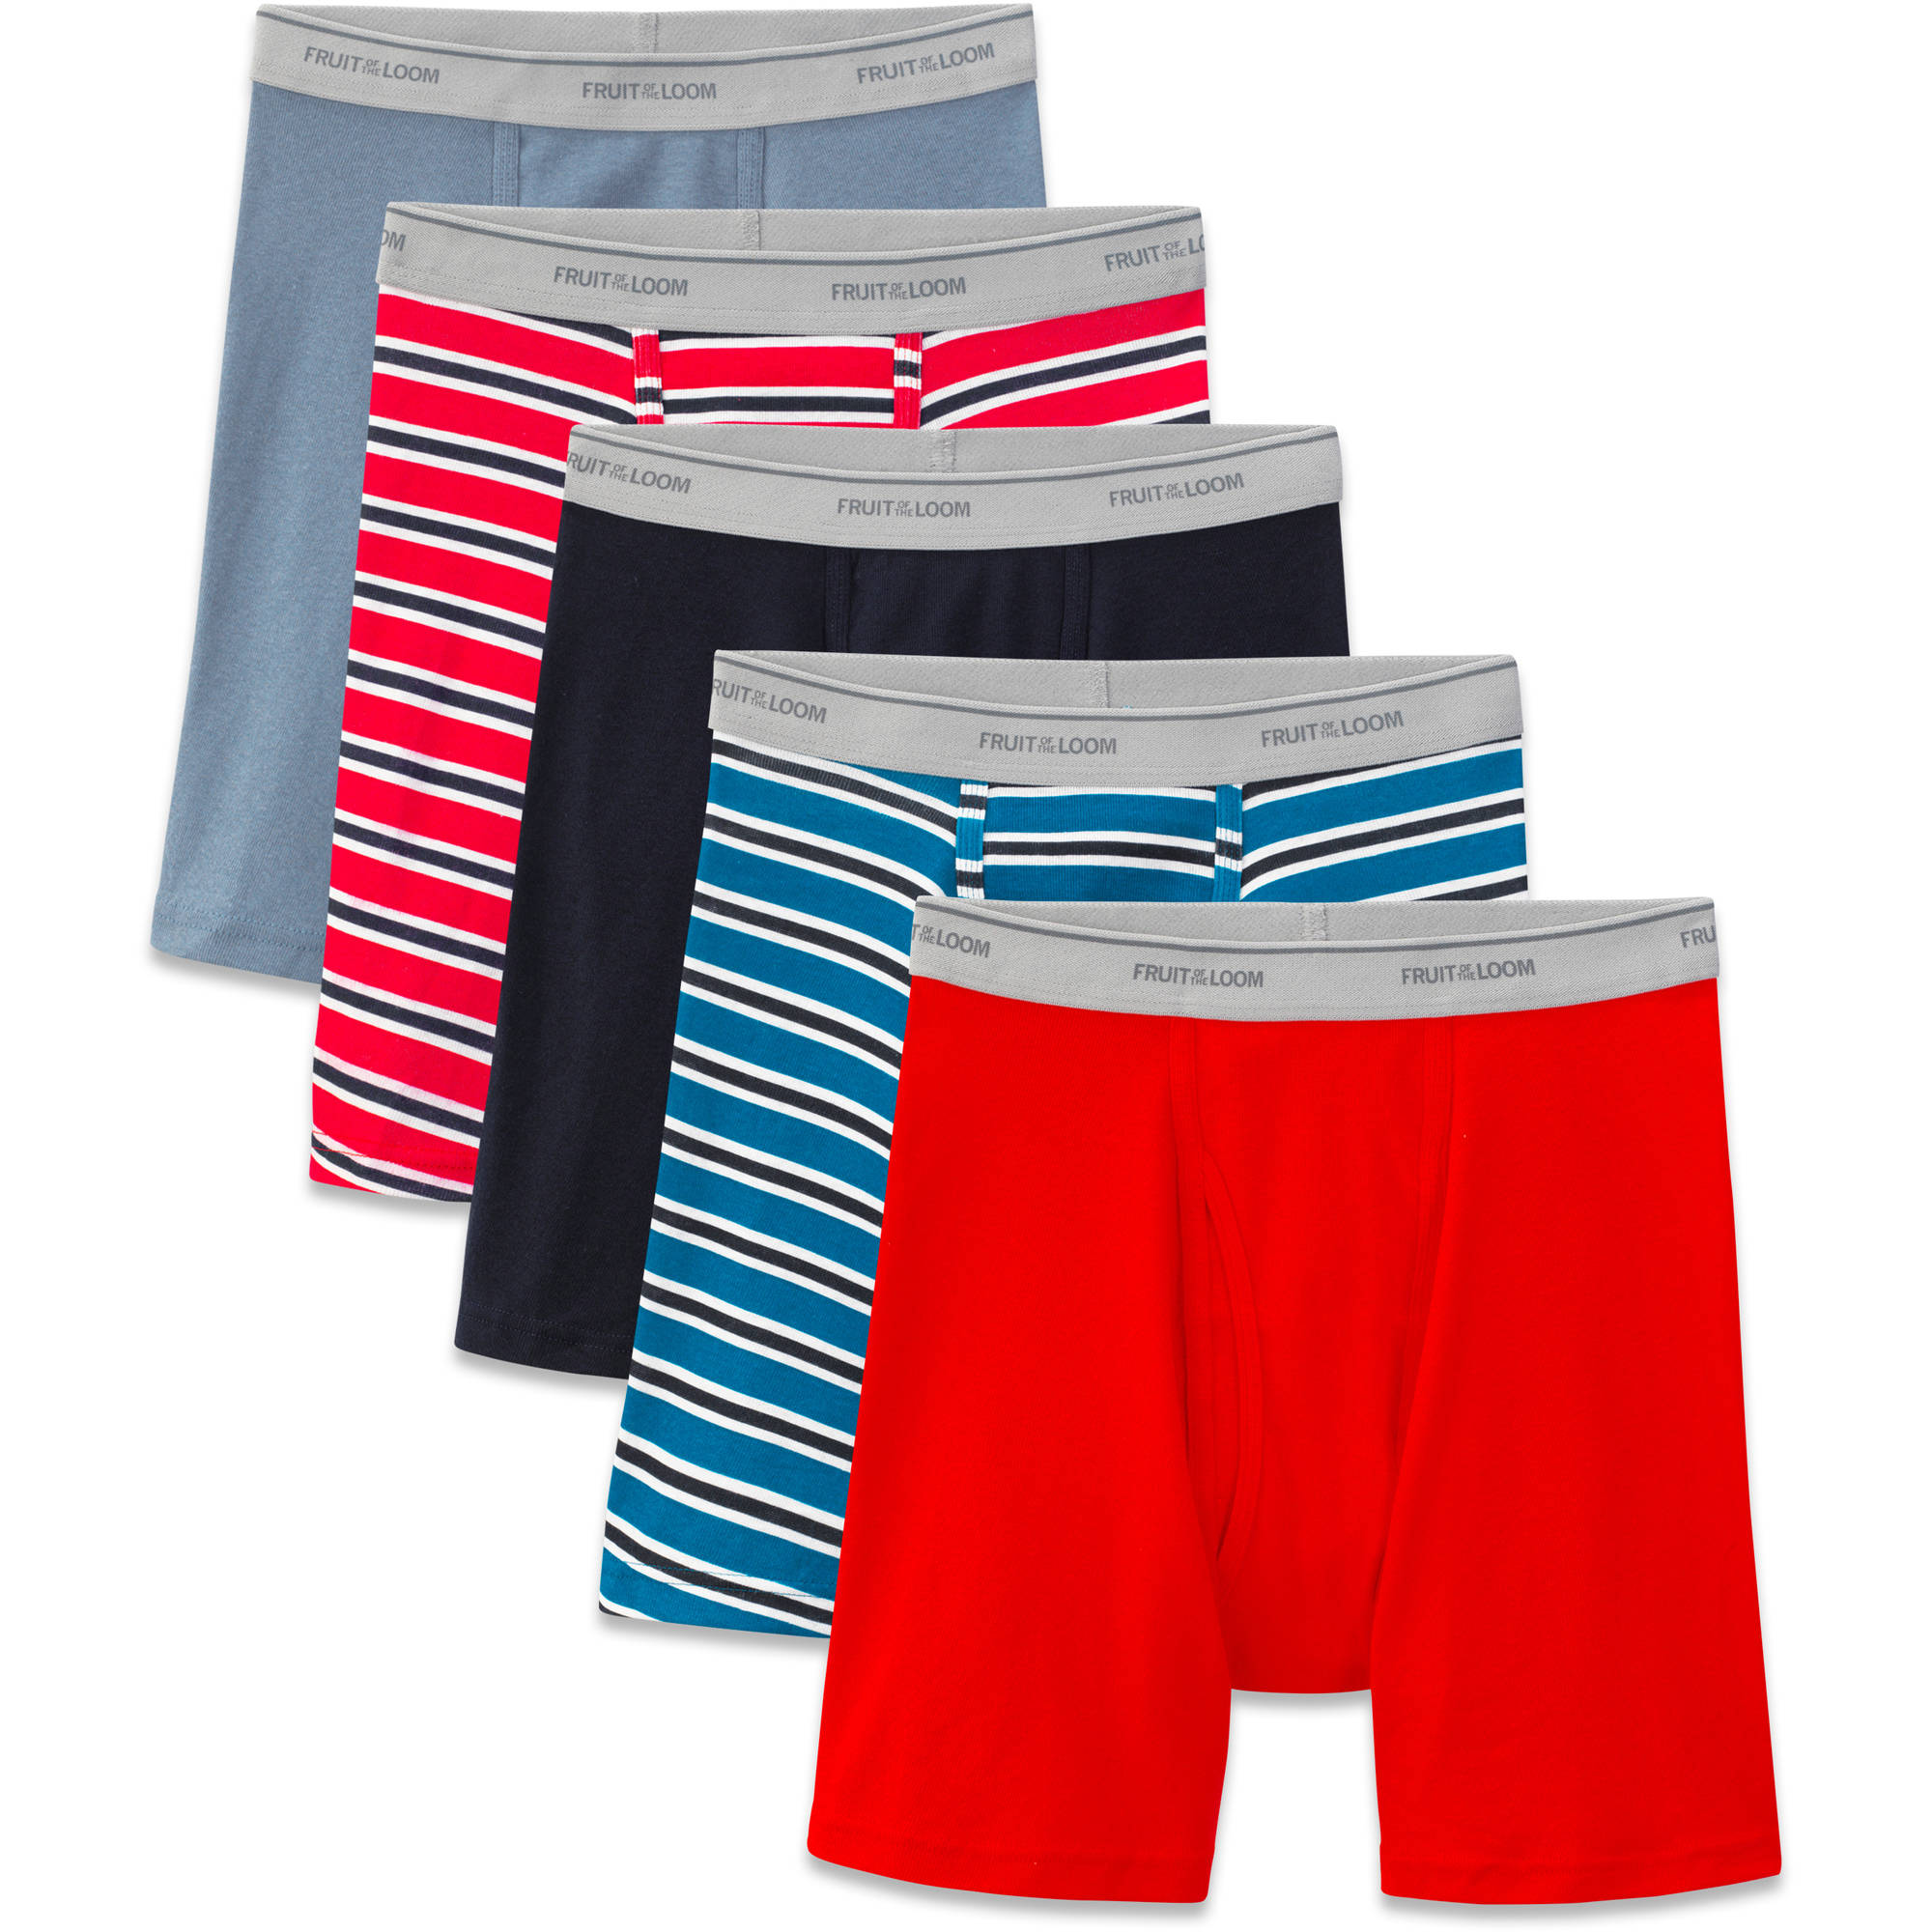 Fruit of the Loom Men's Stripes and Solids Boxer Briefs, 5-Pack